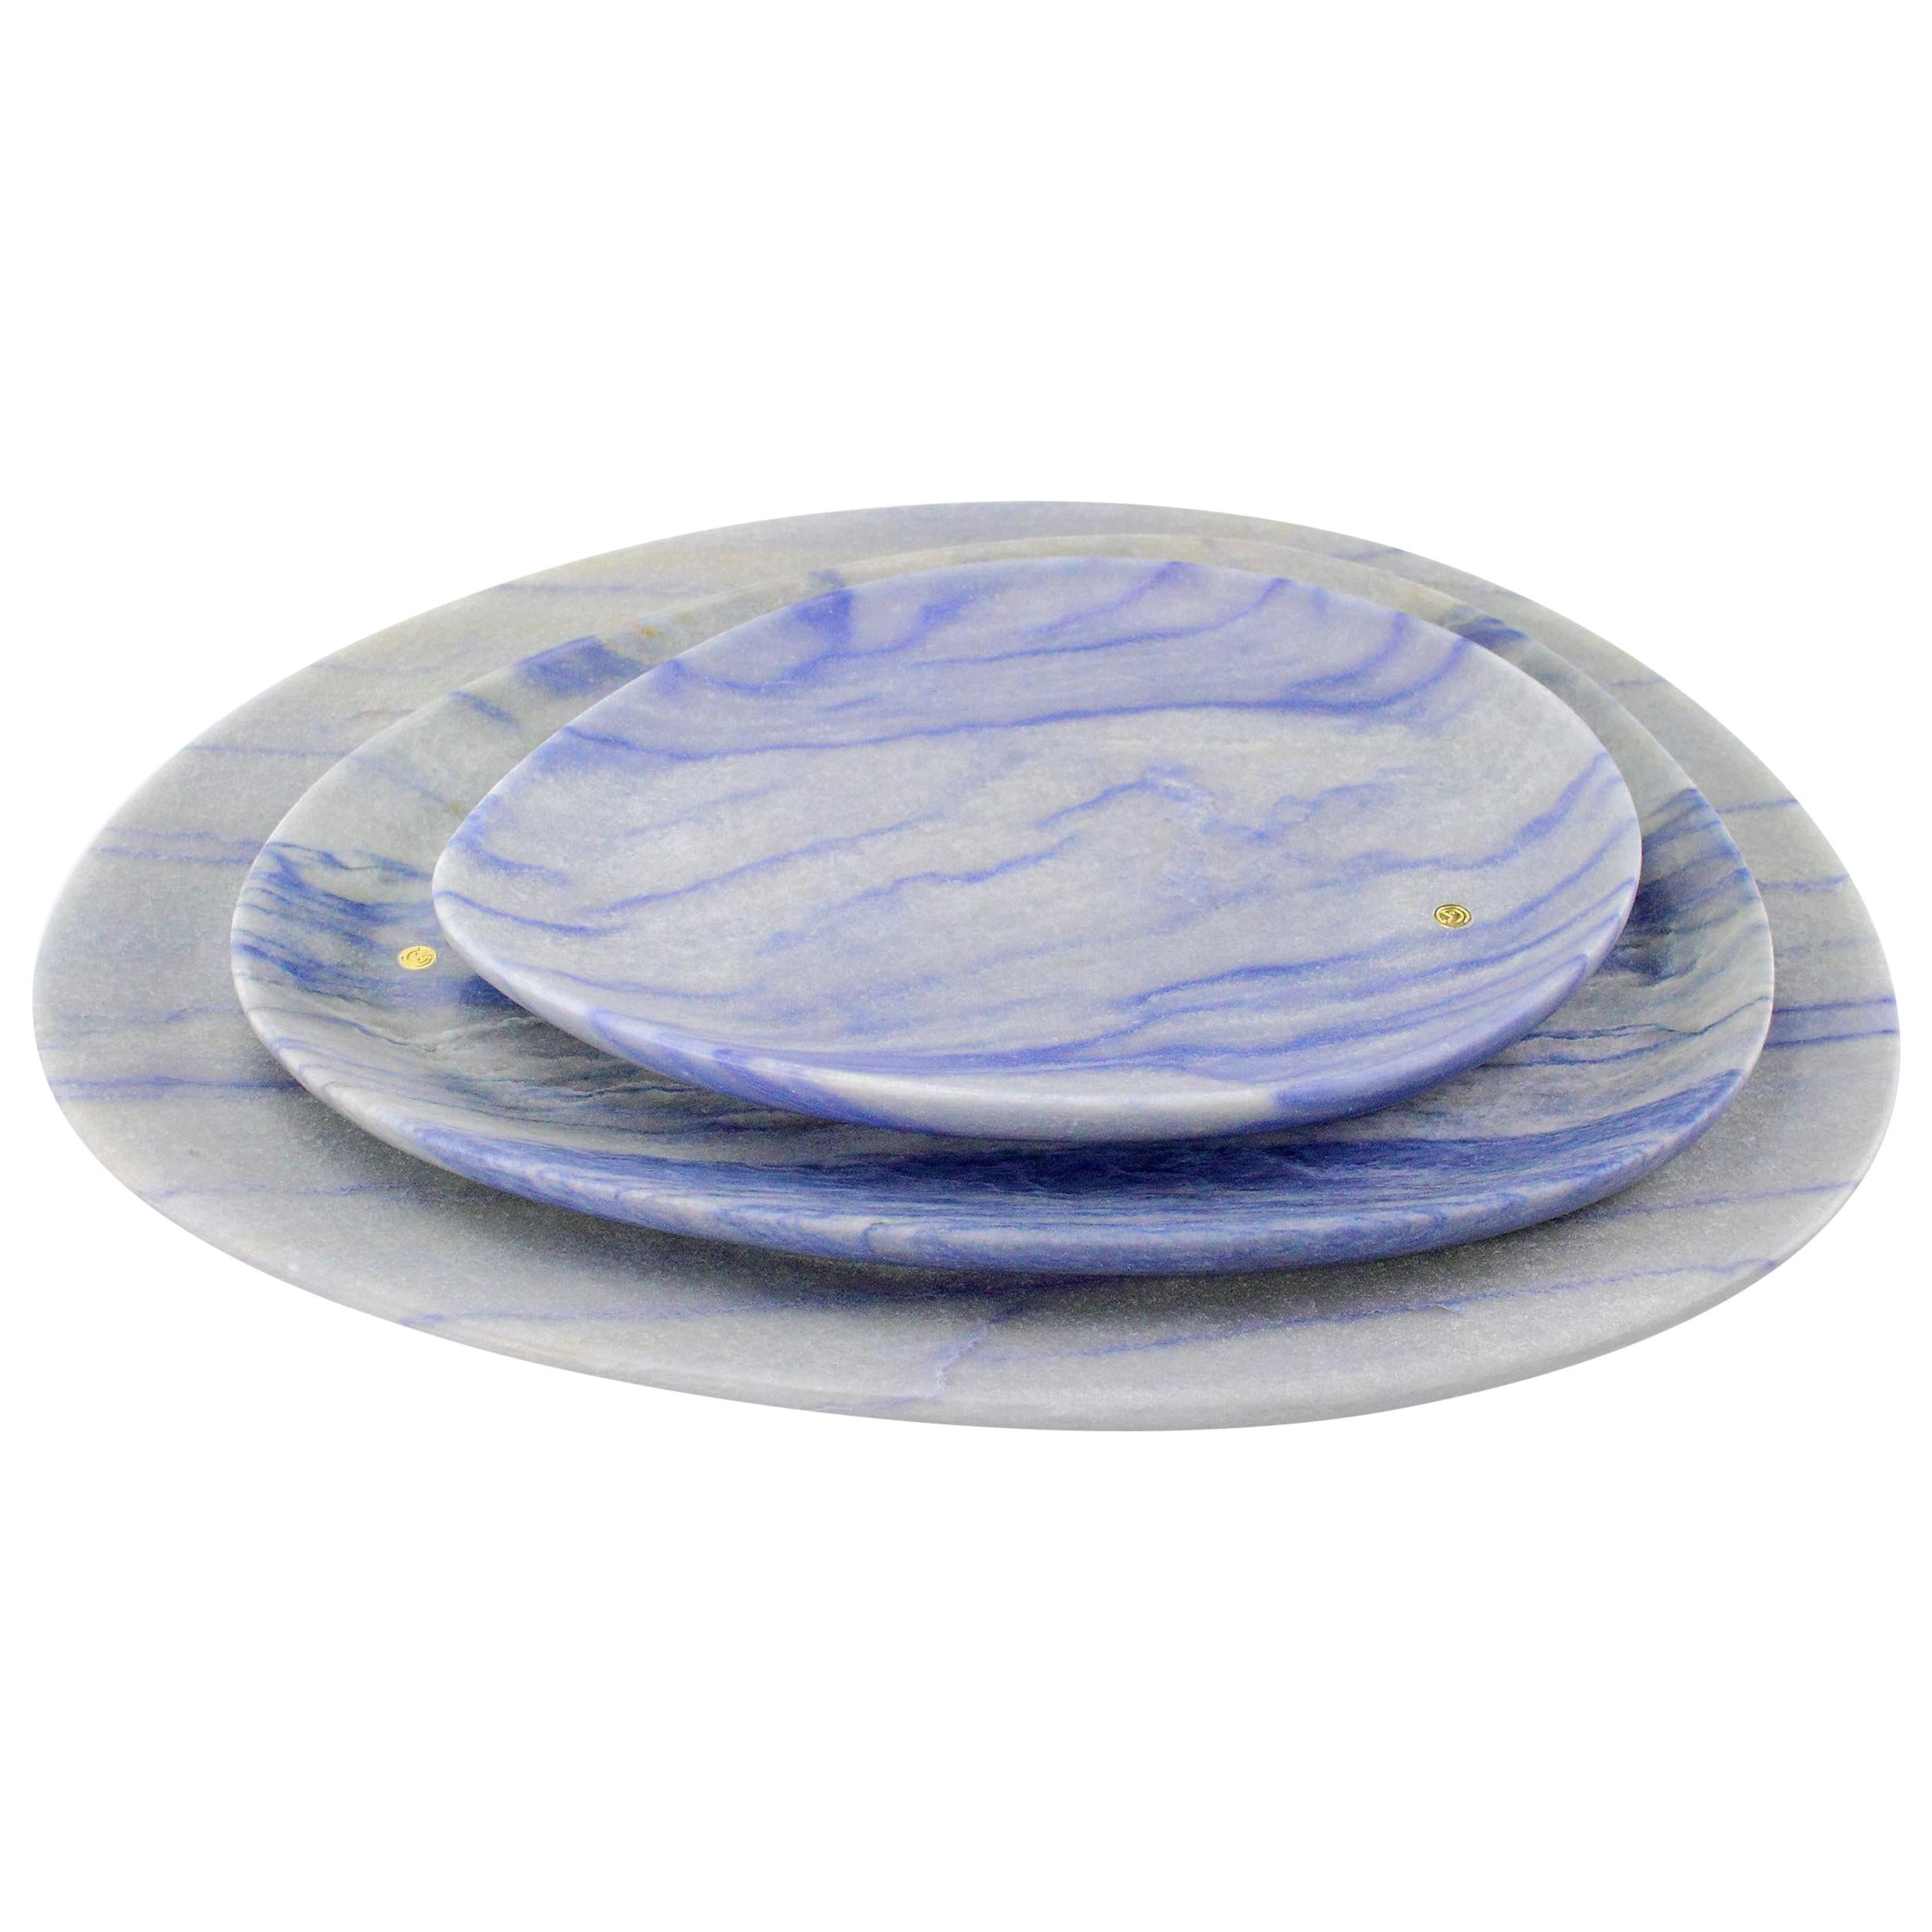 Set of Plates Hand Carved in Azul Macaubas Marble Design by Pieruga Marble